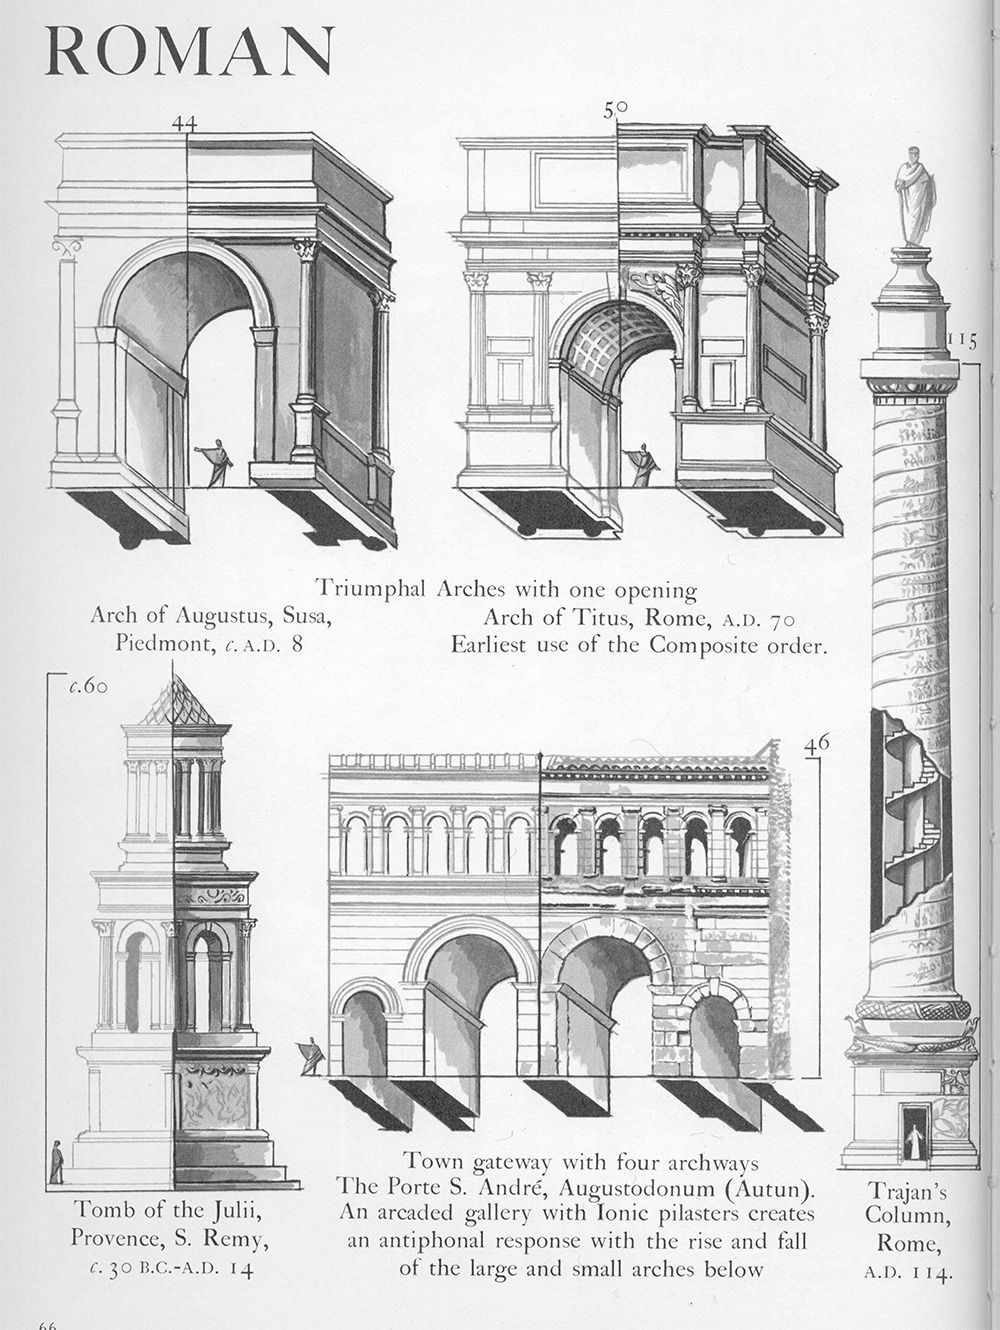 Roman Arches And Monuments Graphic History Of Architecture By John Mansbridge Architecture History Architecture Drawing European Architecture